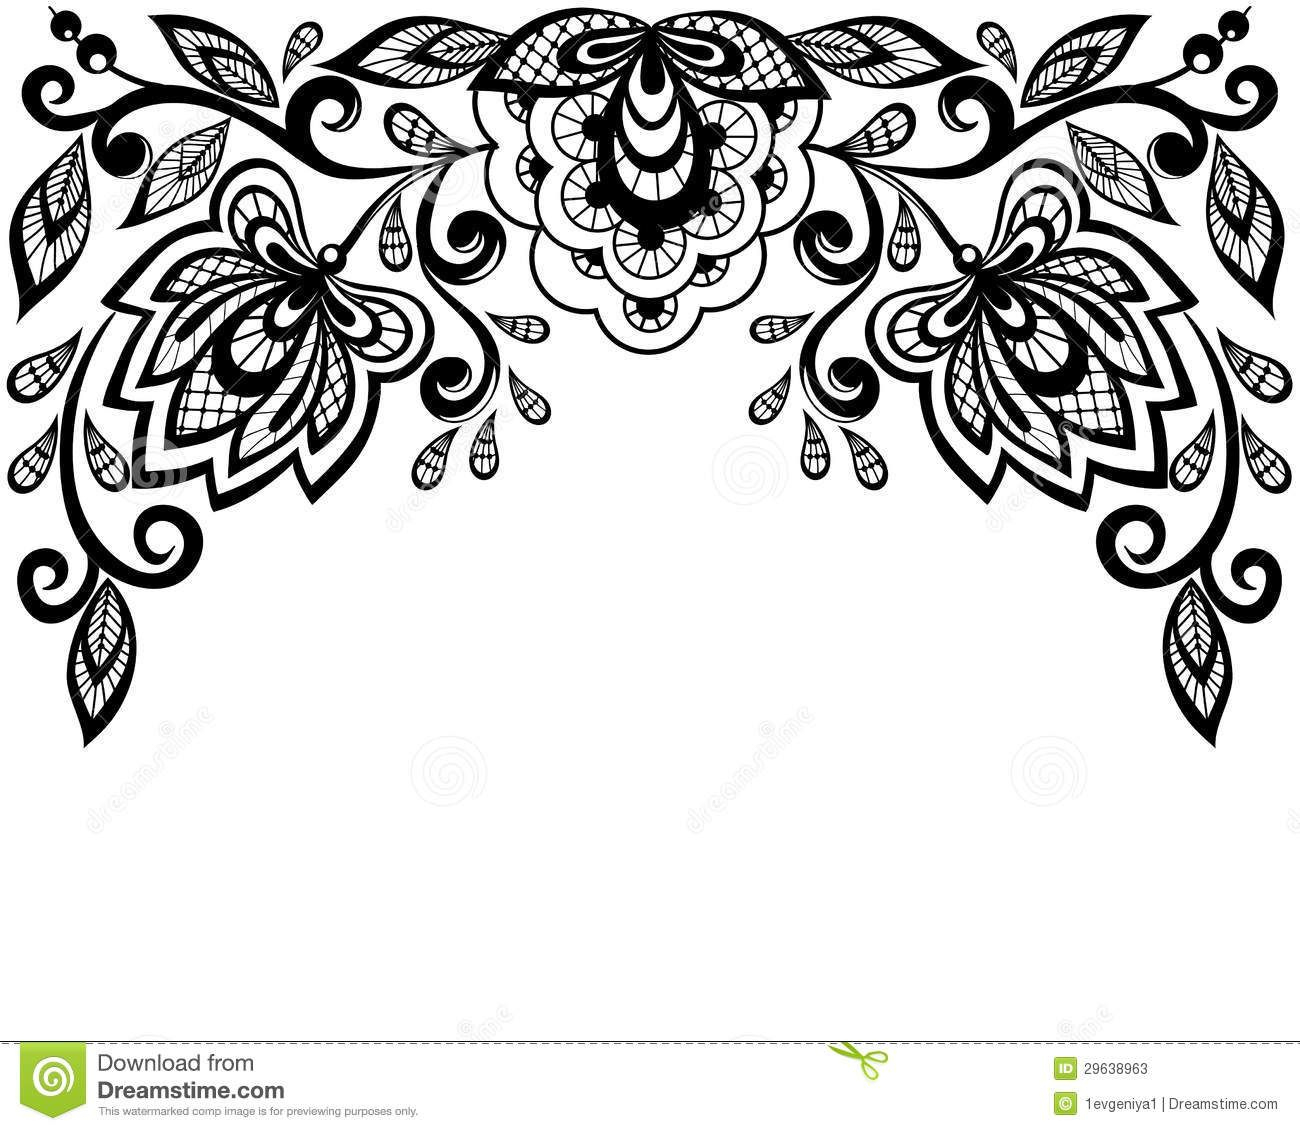 Leaves Clip Art Black And White Border | Clipart Panda - Free - Free Printable Lace Stencil